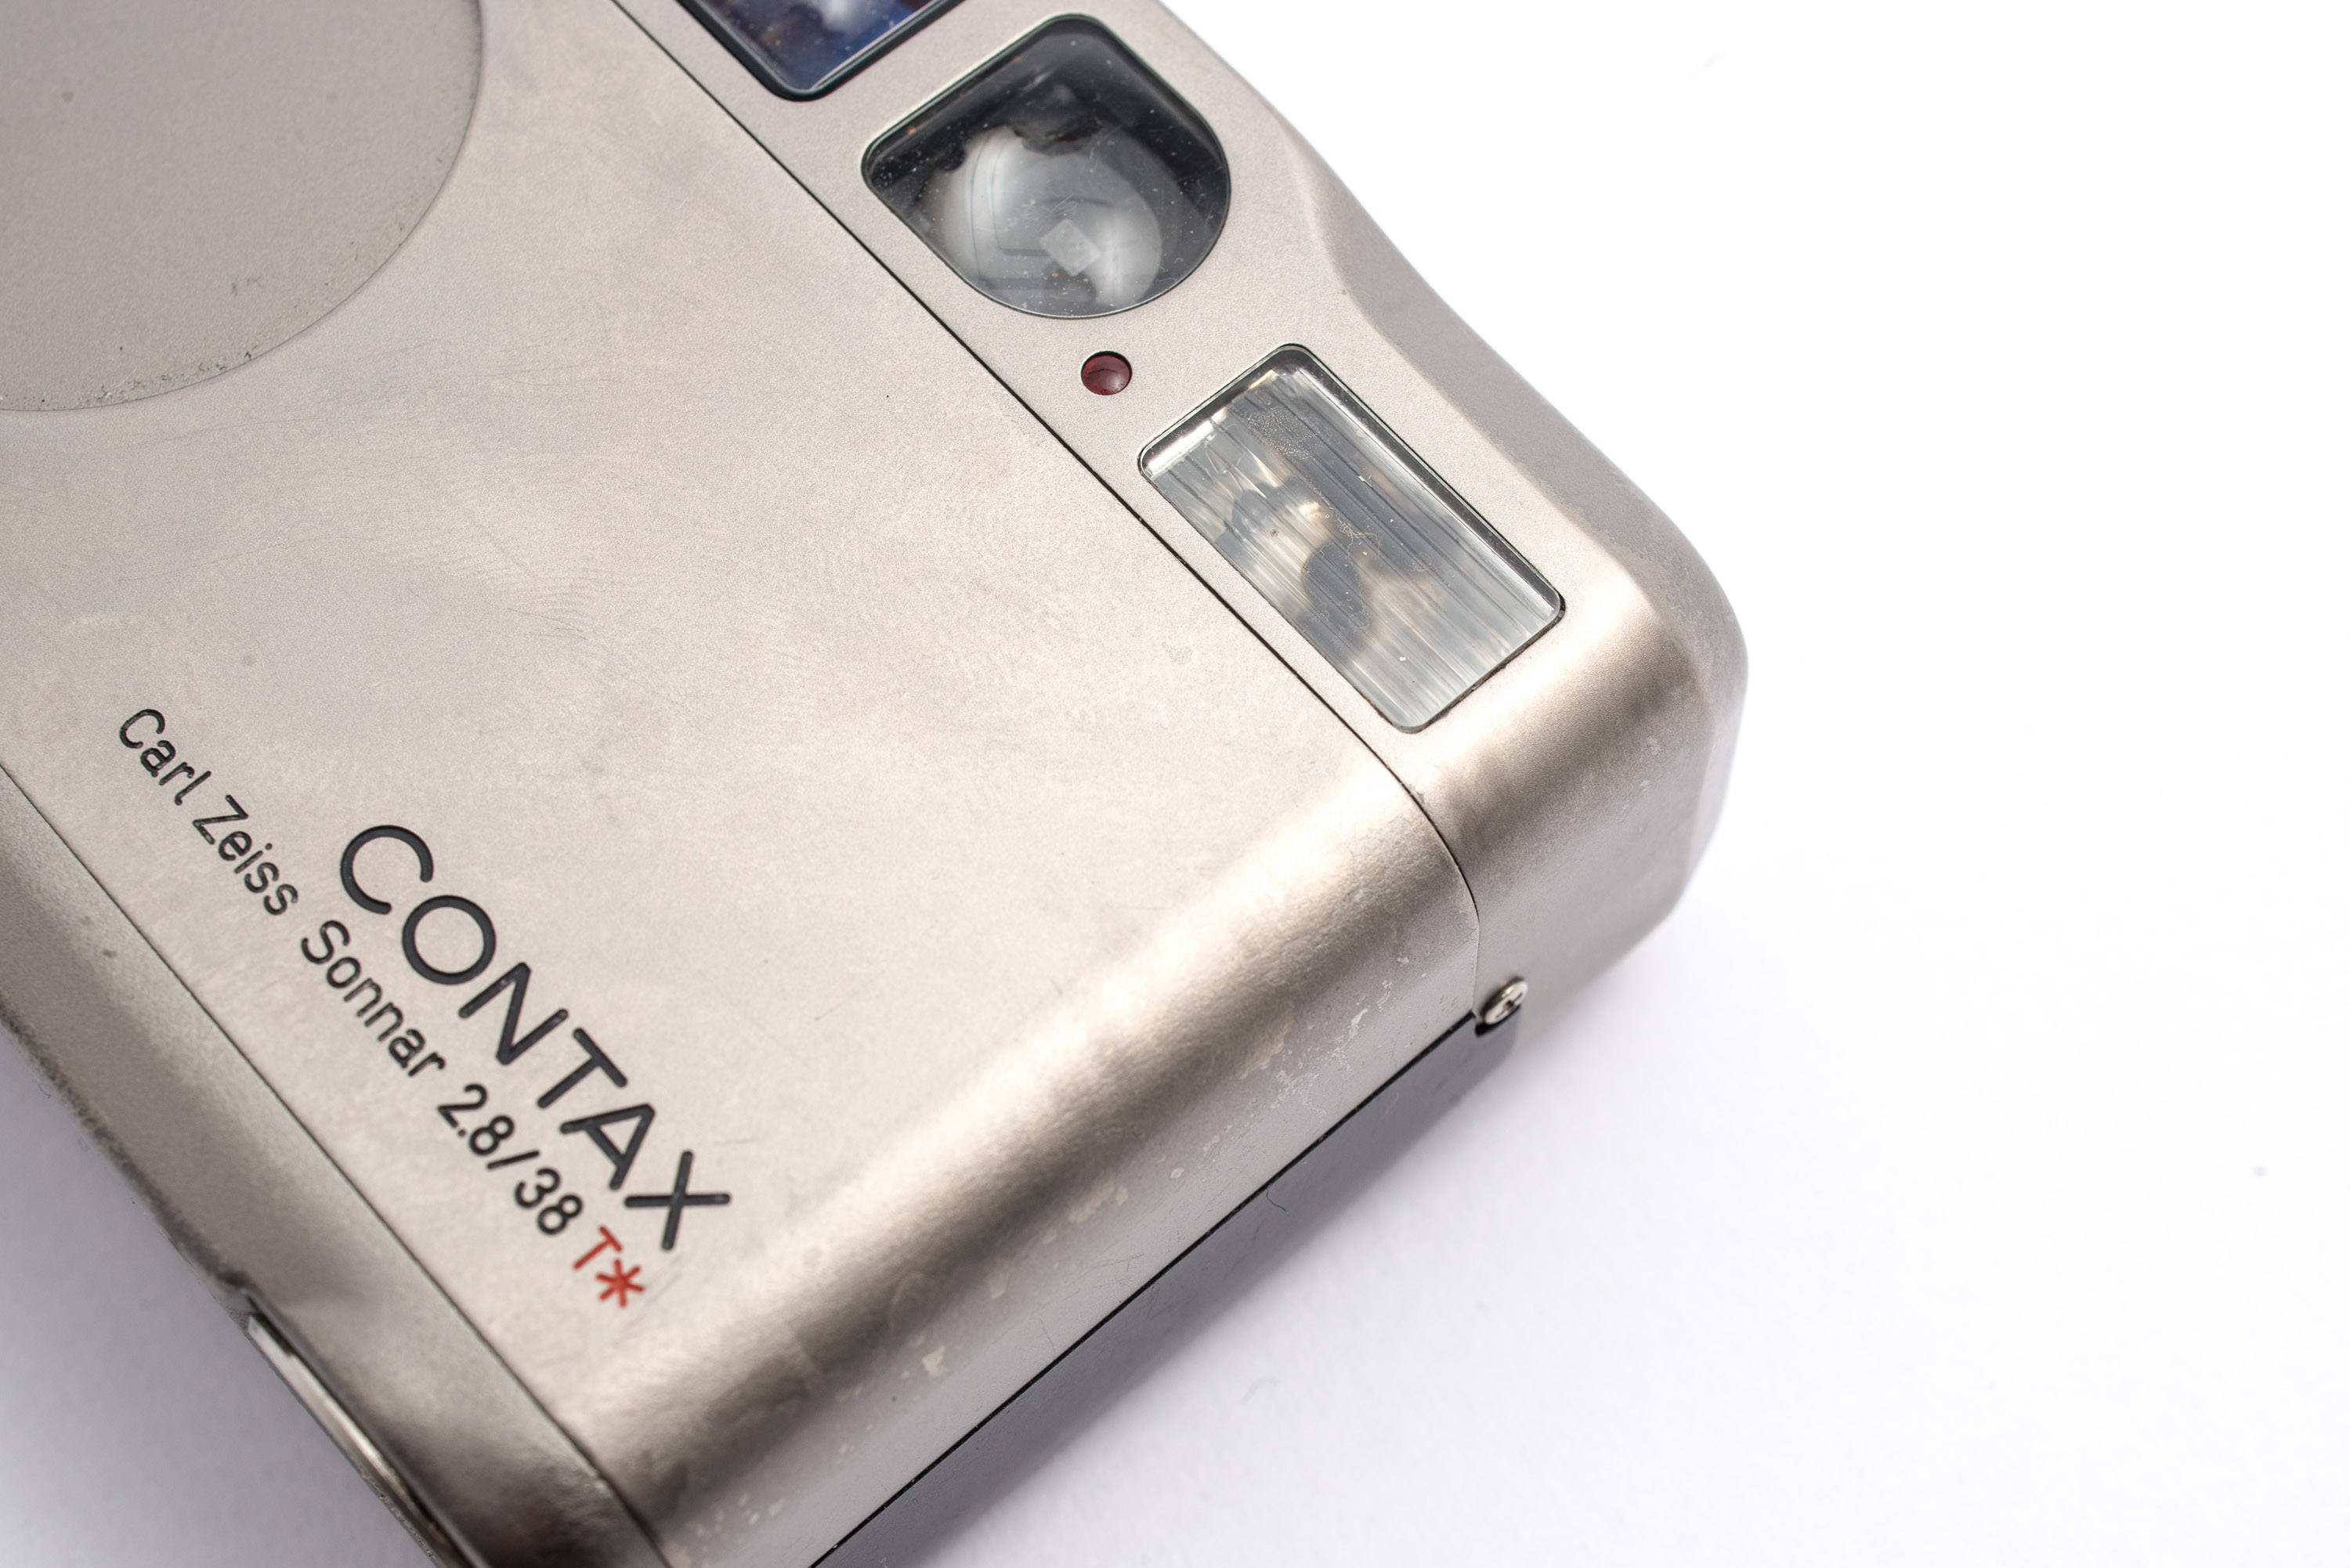 Contax T2 viewfinder shot